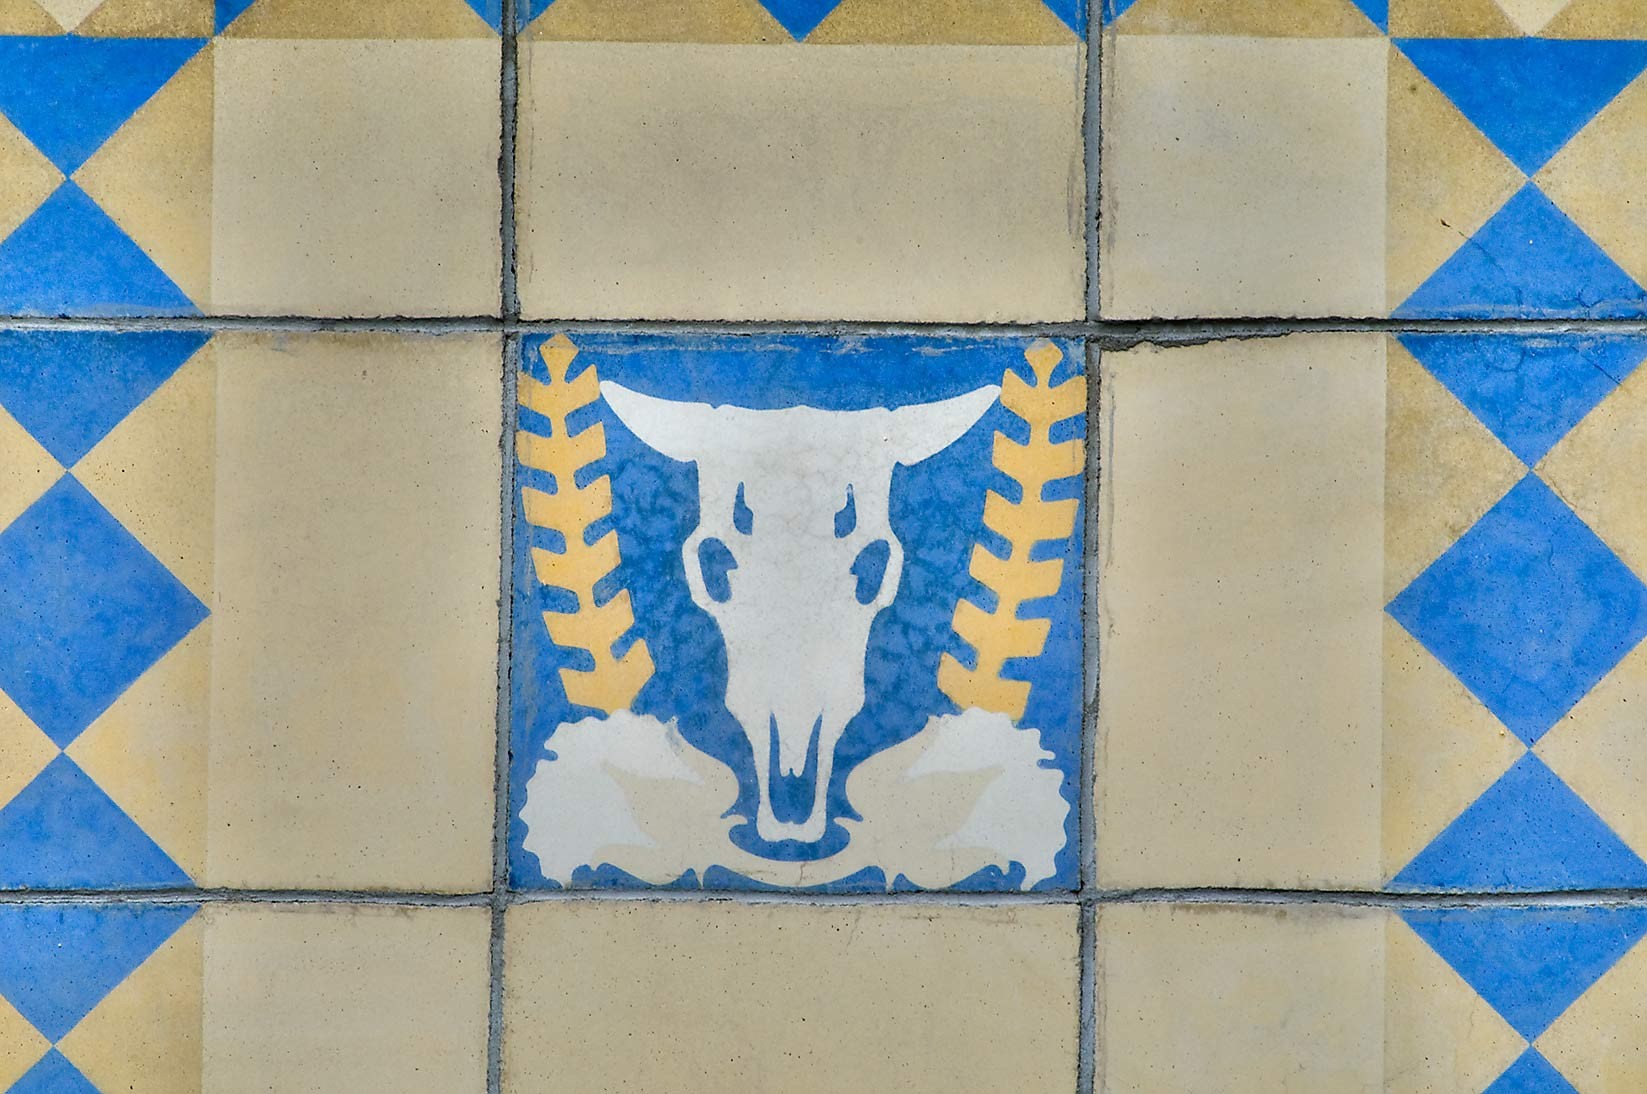 Cow skull on ceramic tile of Agricultural...M University. College Station, Texas